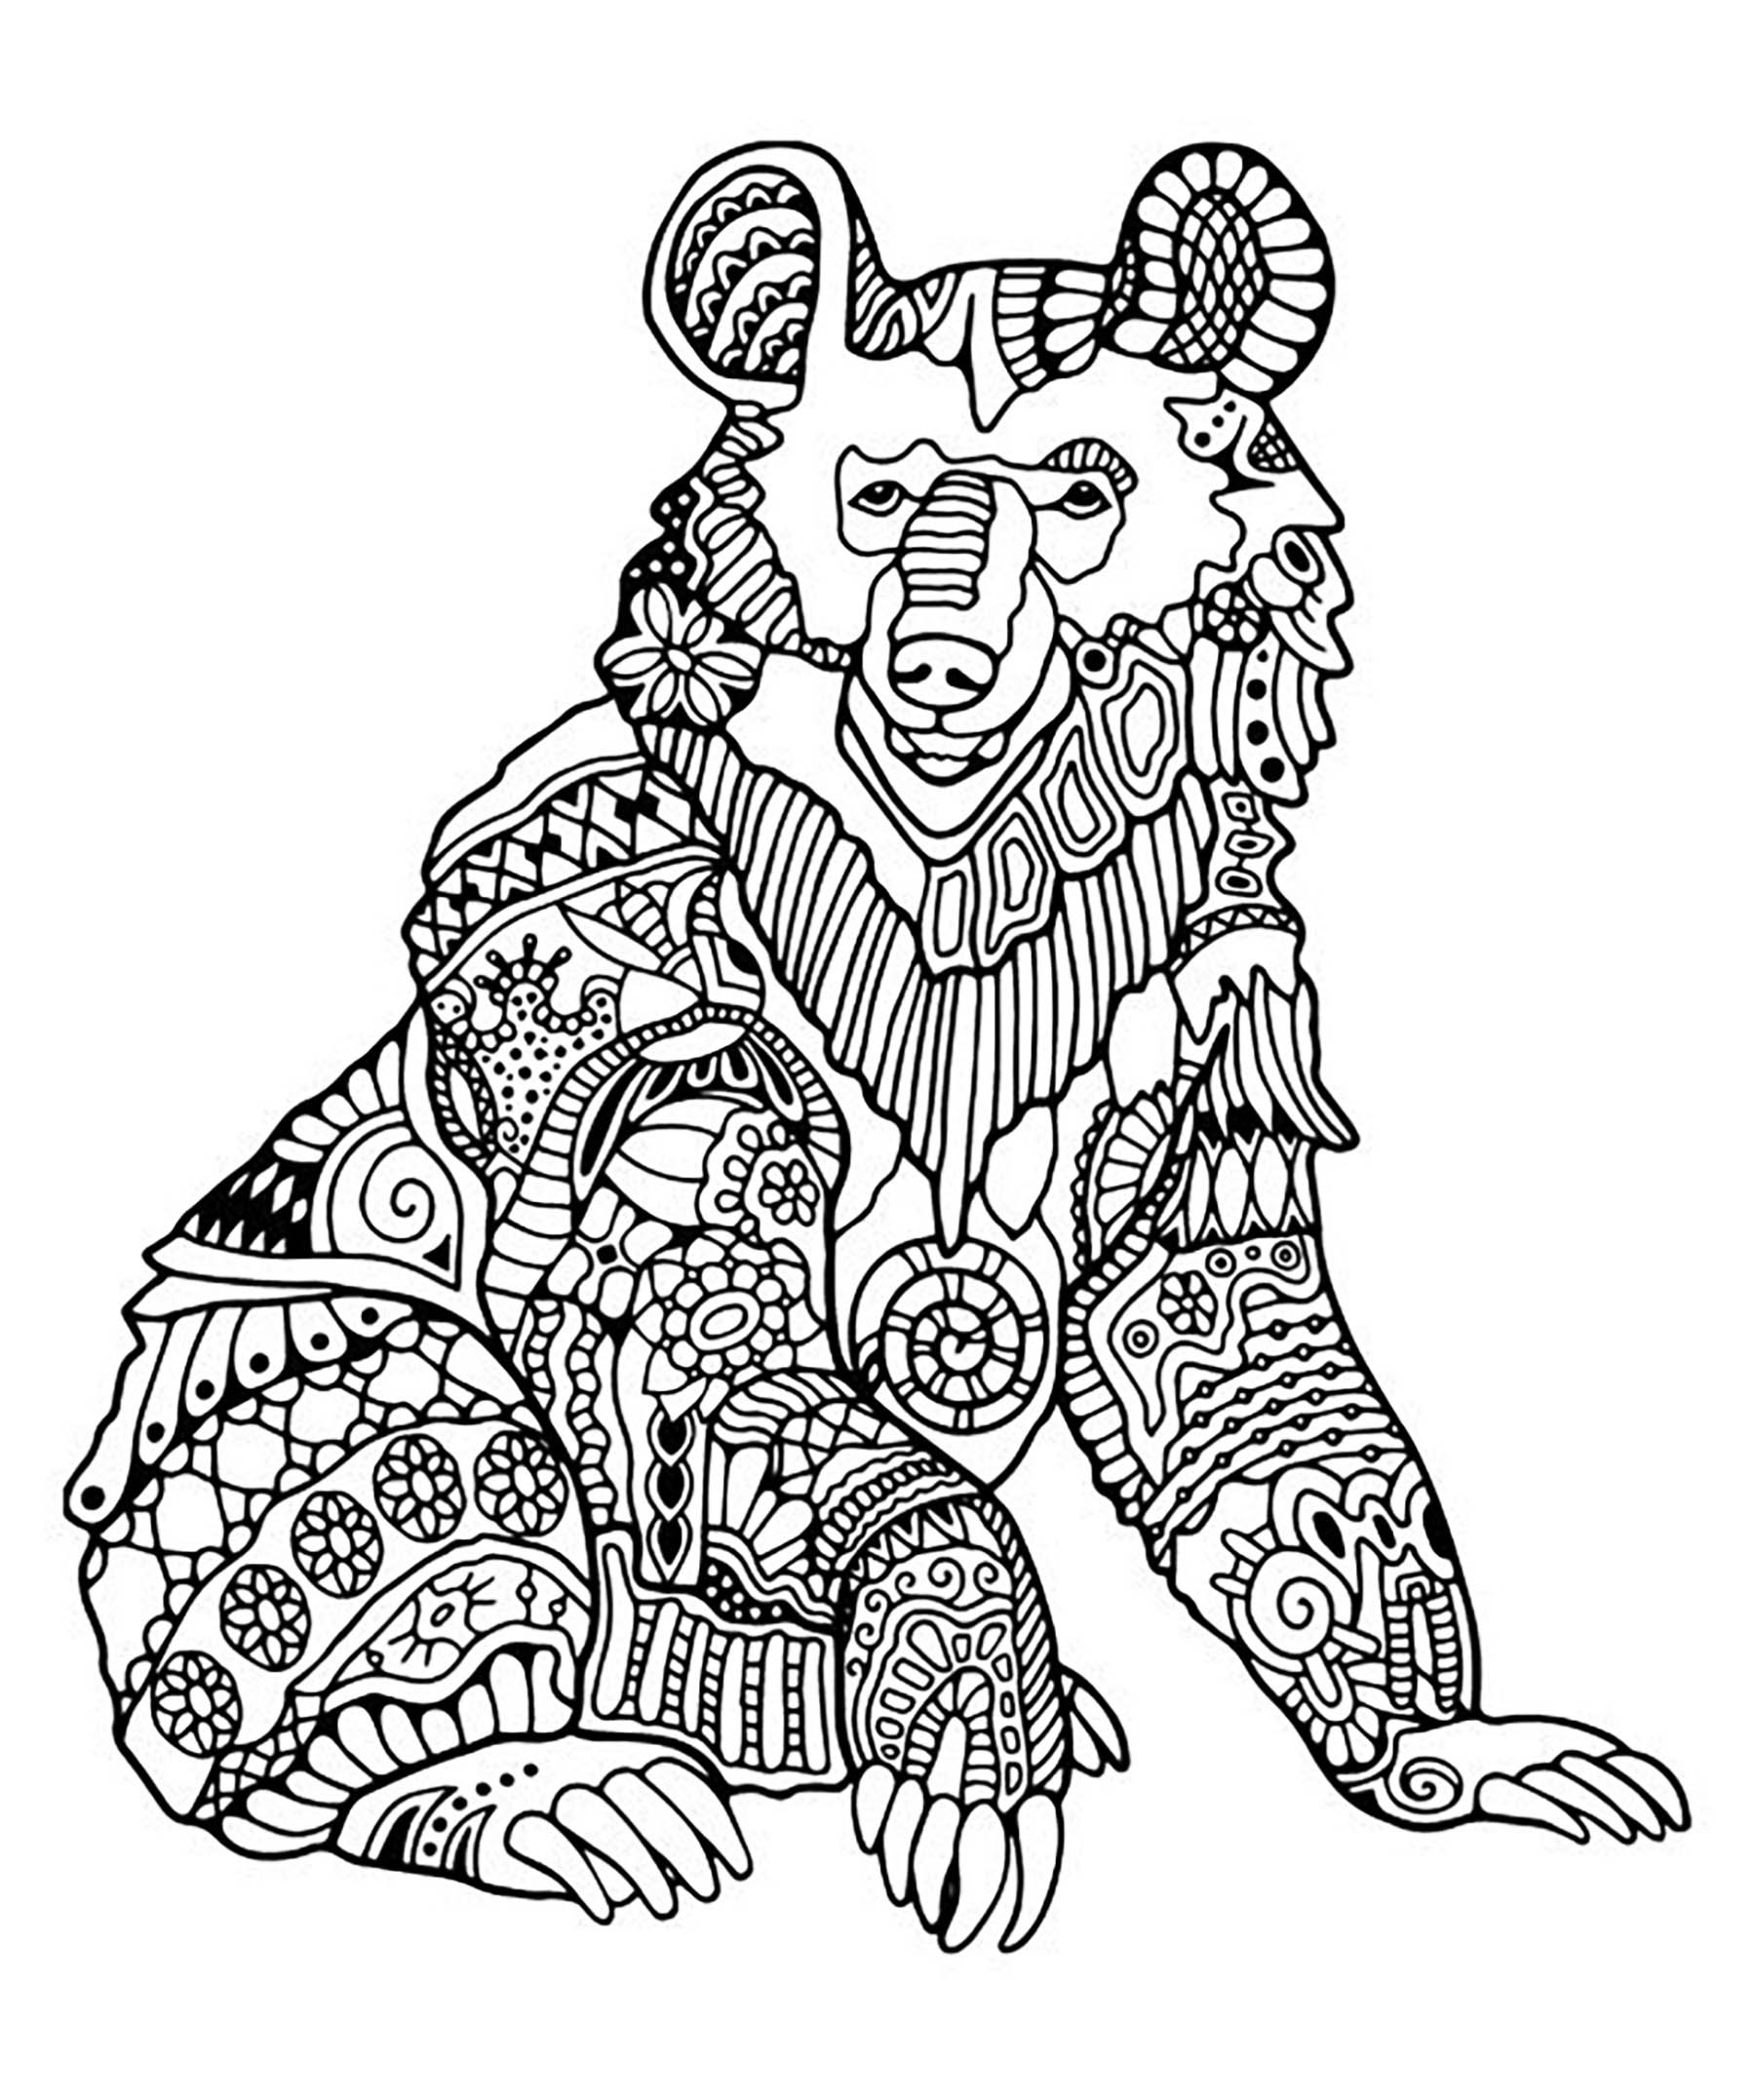 Bear 1 Bears Adult Coloring Pages